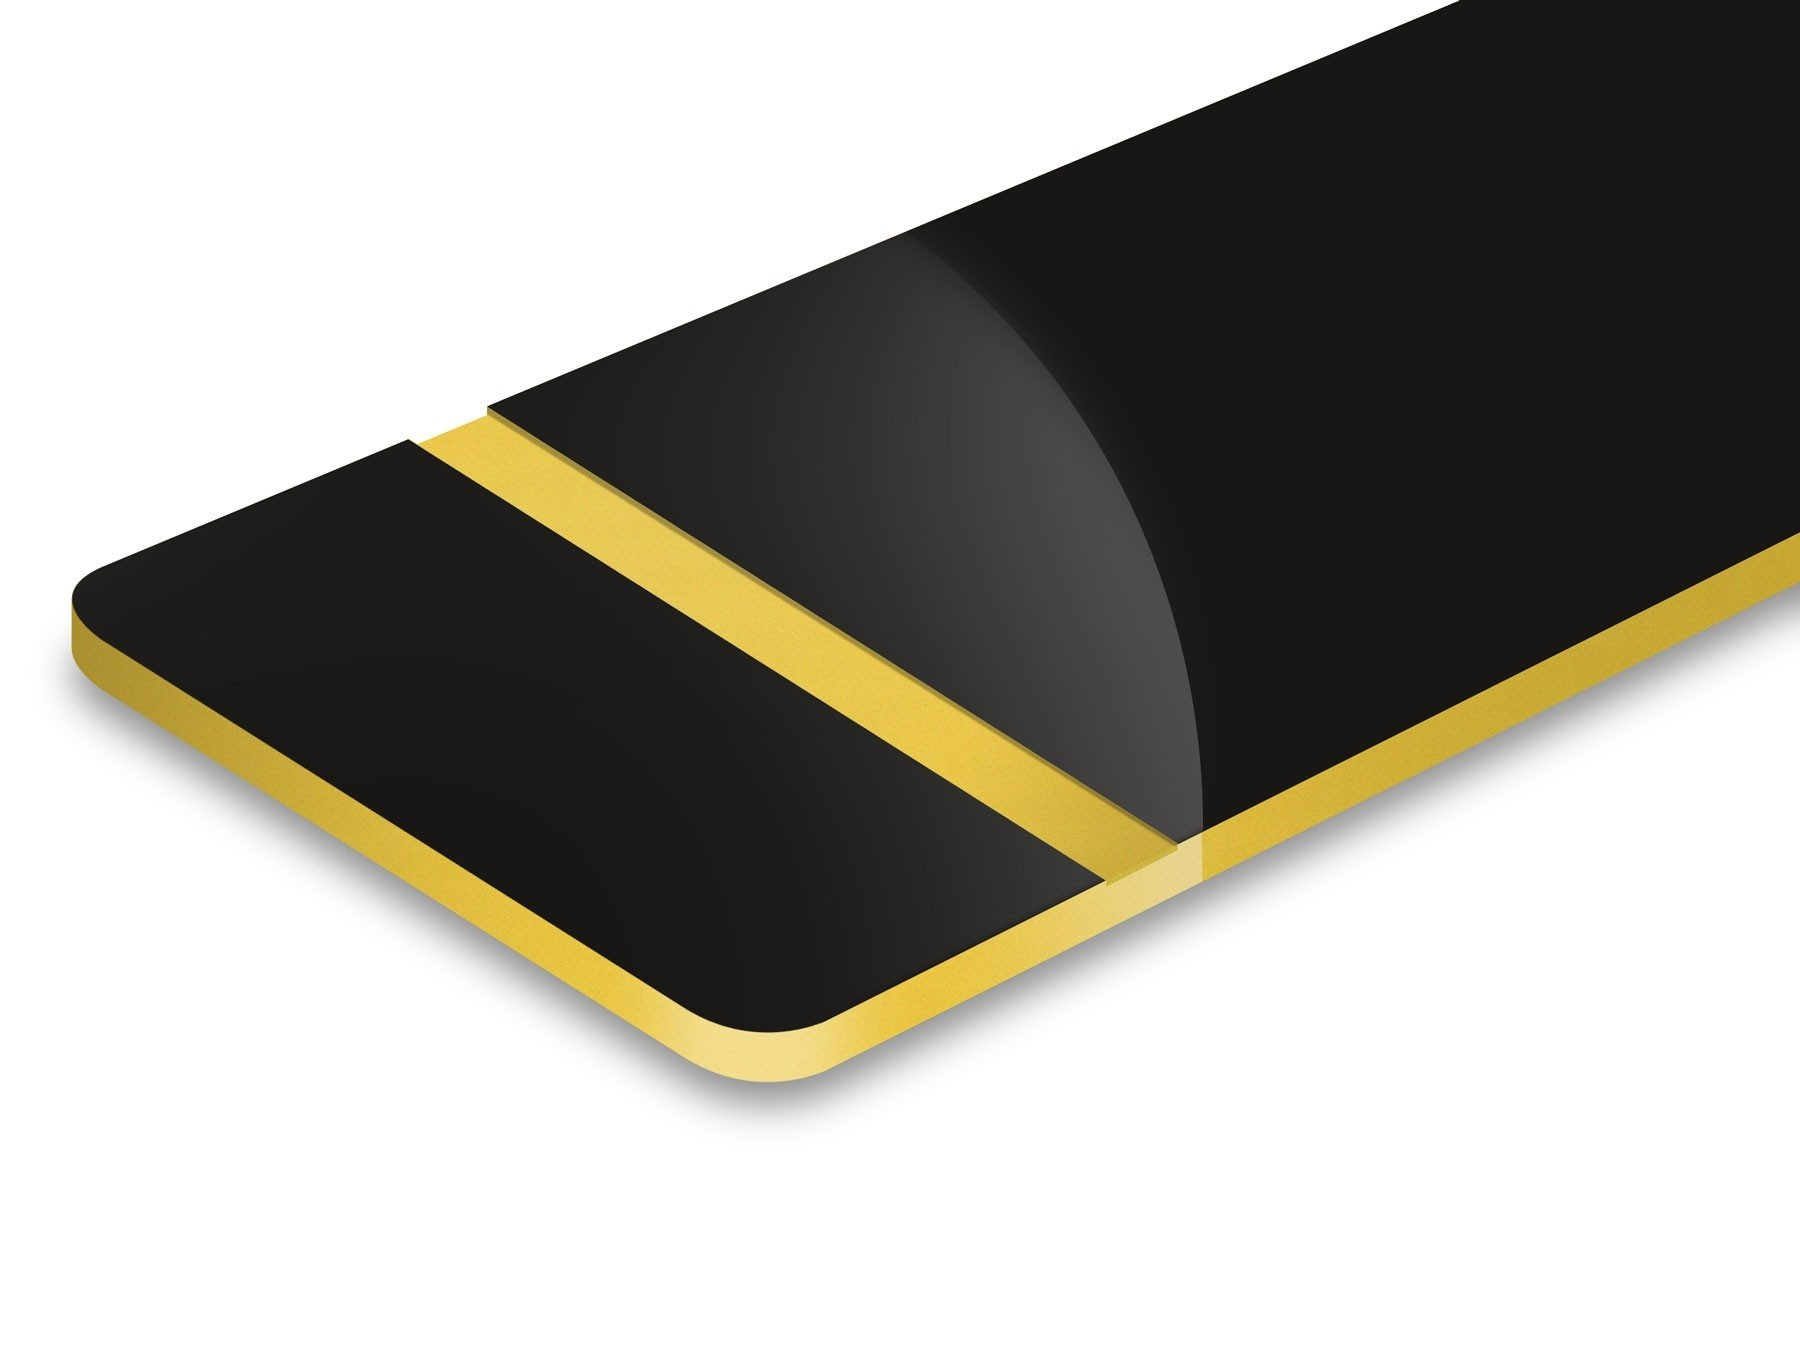 TroLase, Gloss Black/Gold, 2ply, 1.6 mm